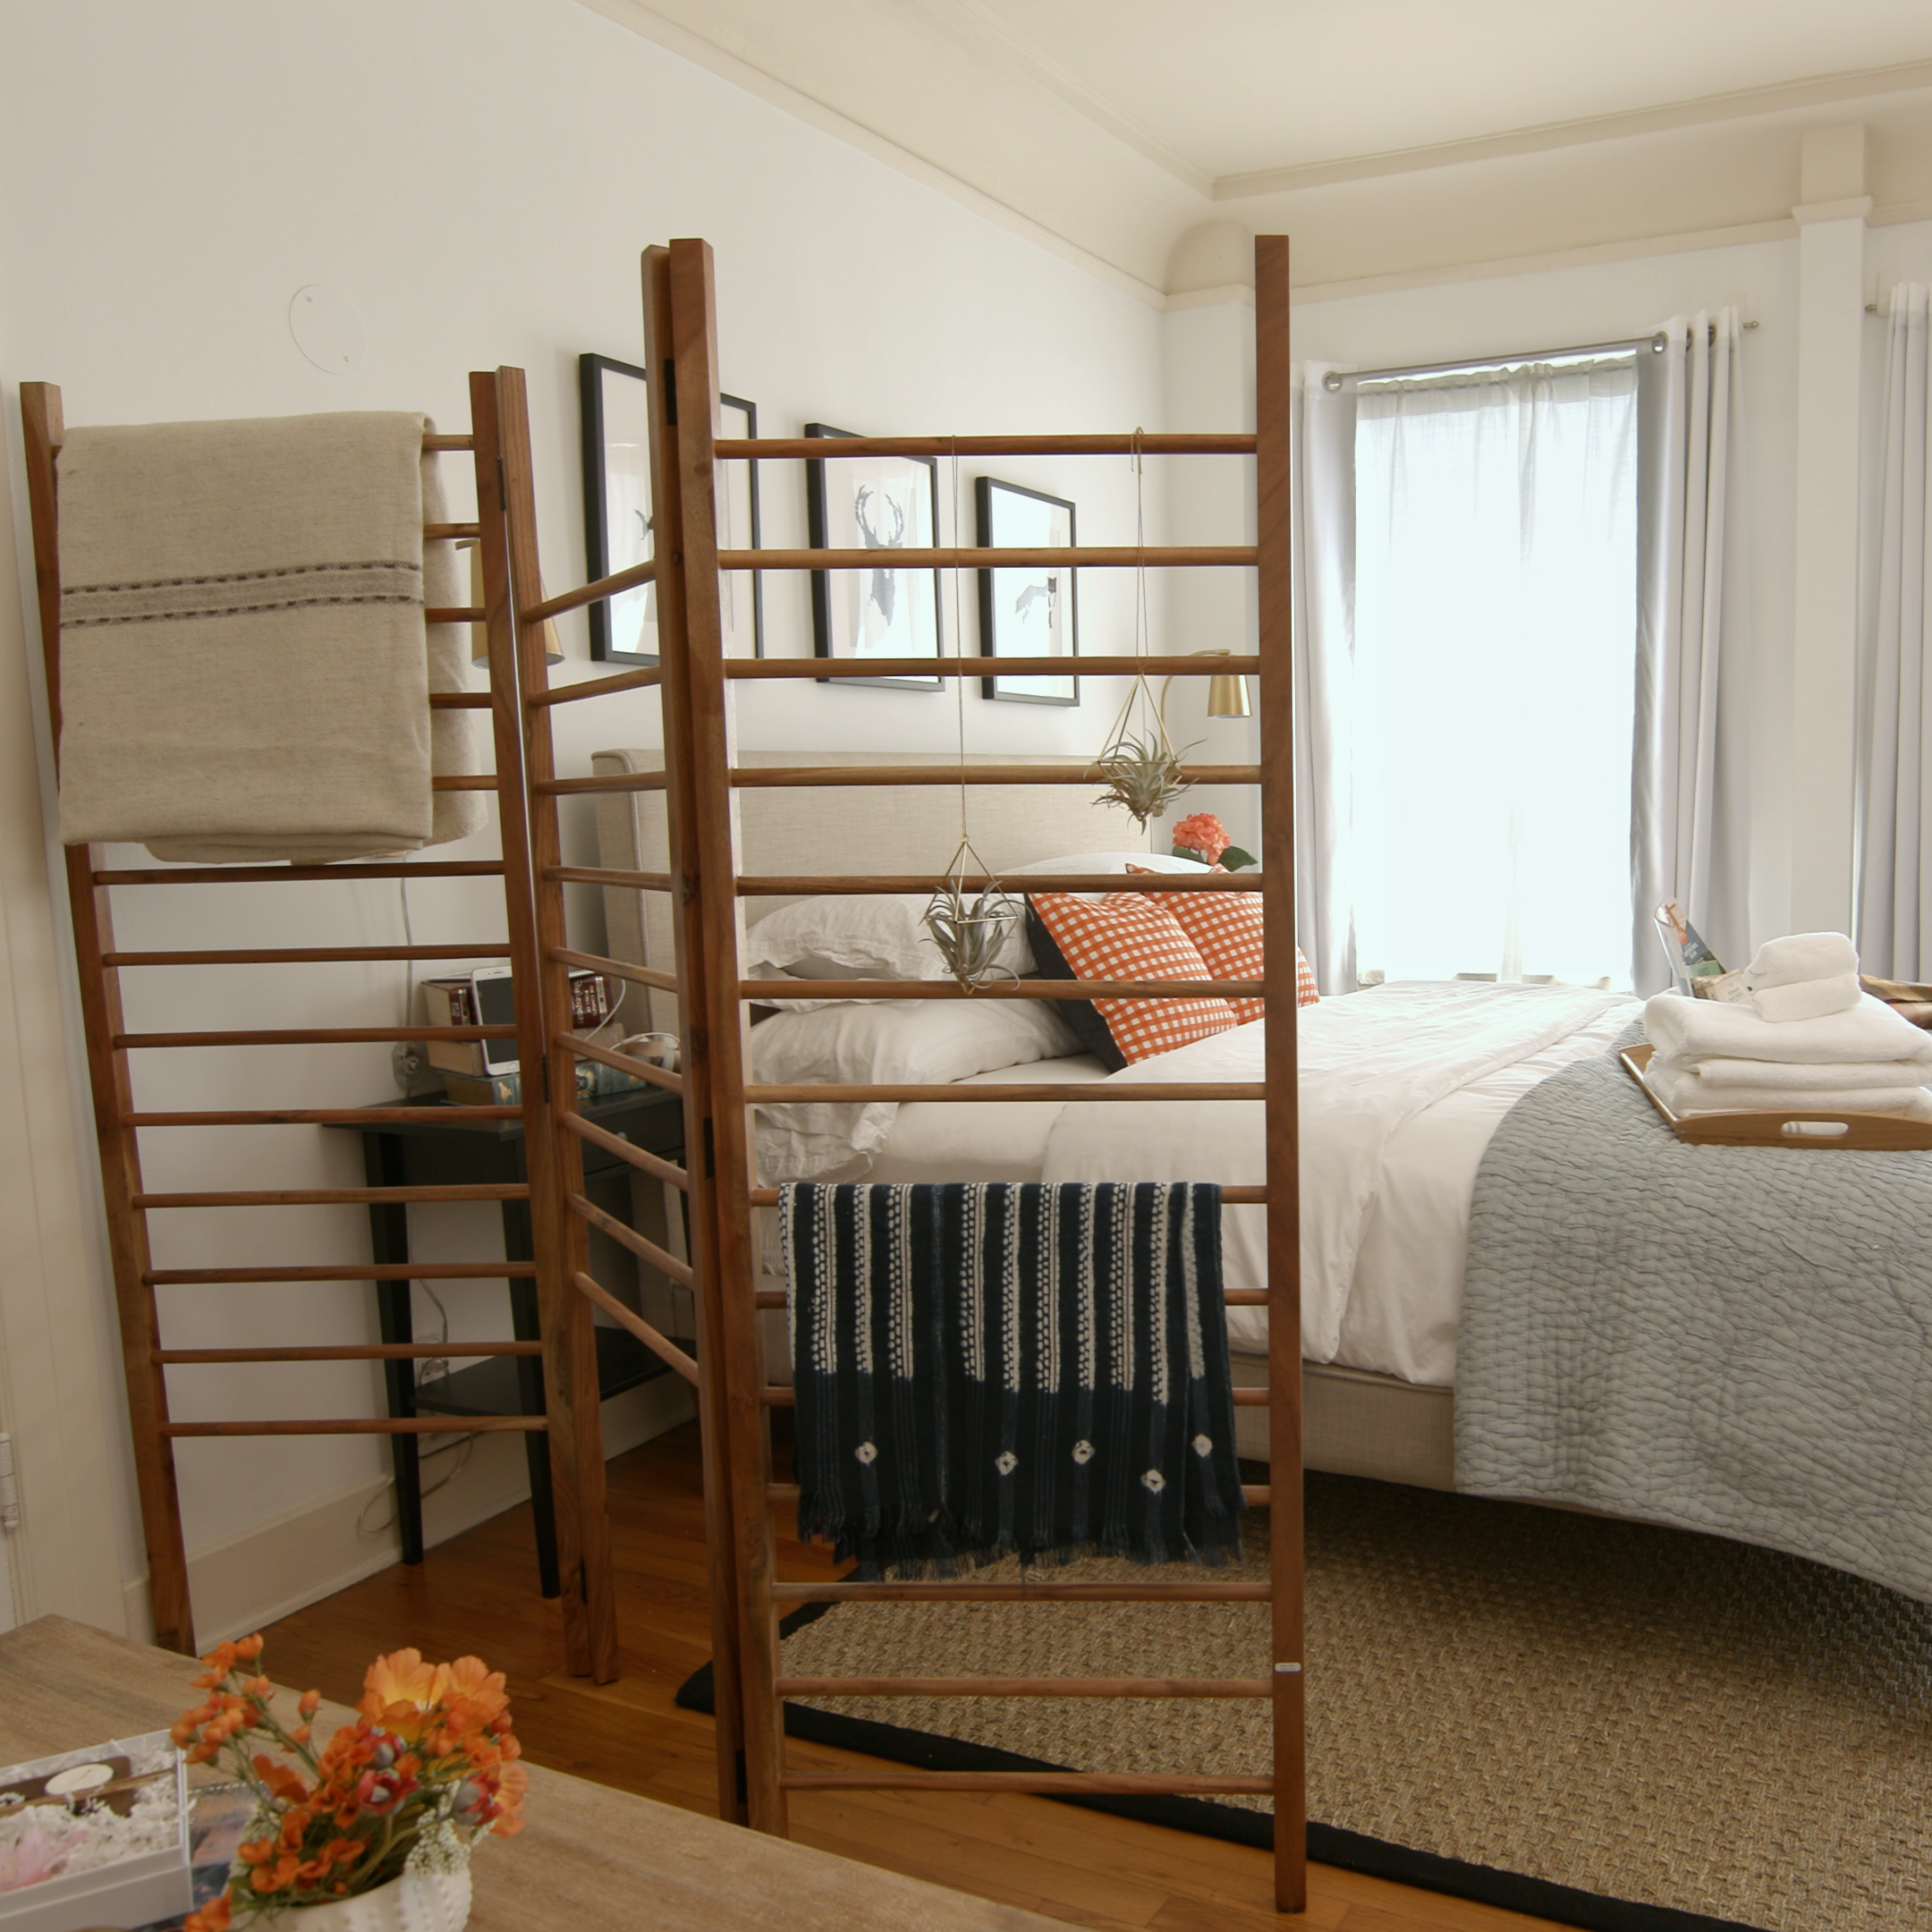 Have Extra Space In Your Home? Why Not Try Renting It Out